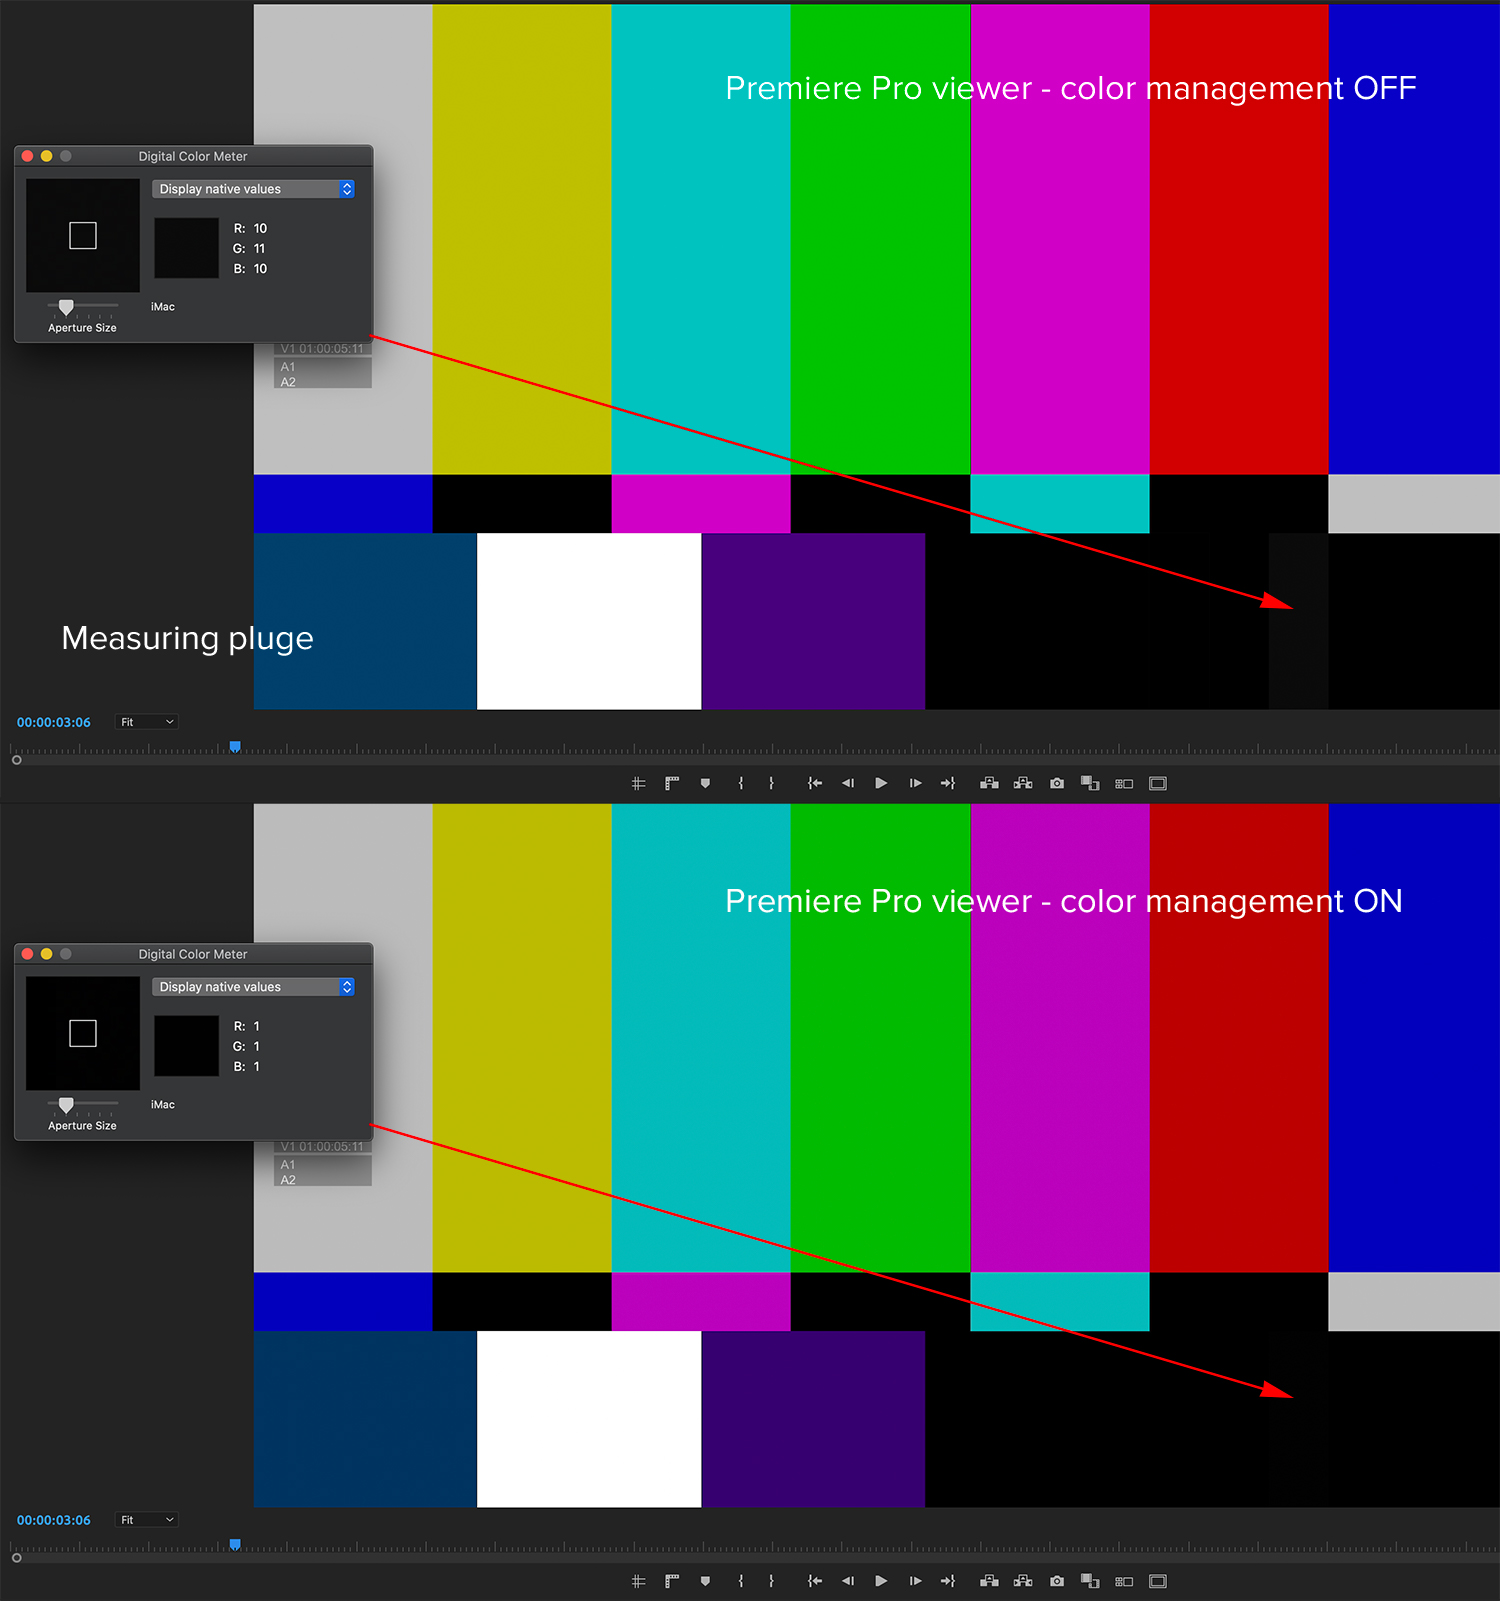 Understanding Premiere Pro's Color Management 23